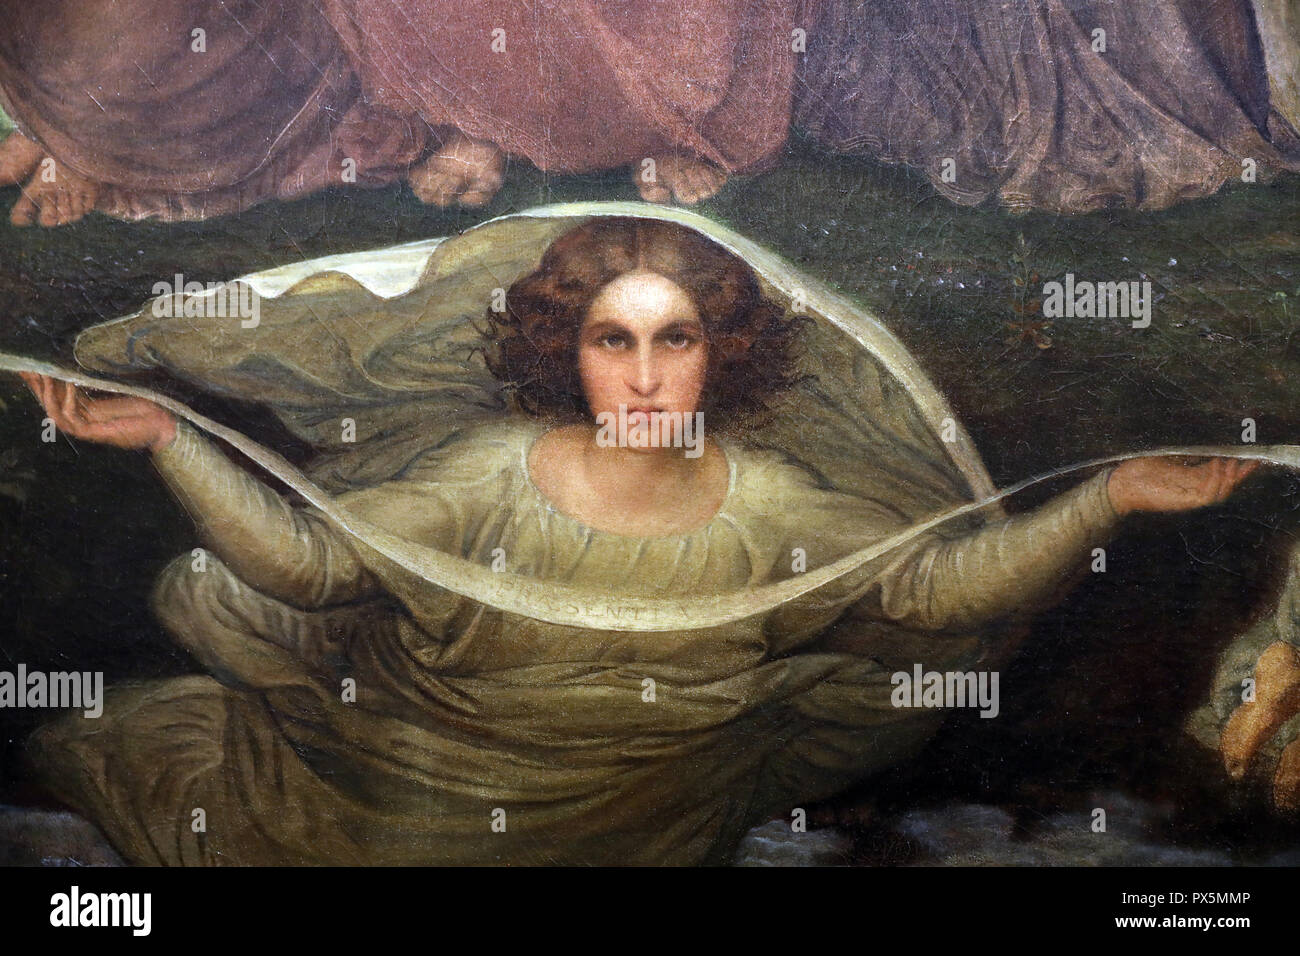 MusŽe des Beaux-Arts, Lyon, France. Fine Art museum, Lyon, France.  Louis Janmot, The Poem of the Soul, between 1835 and 1855. Divine Generation. Deta - Stock Image